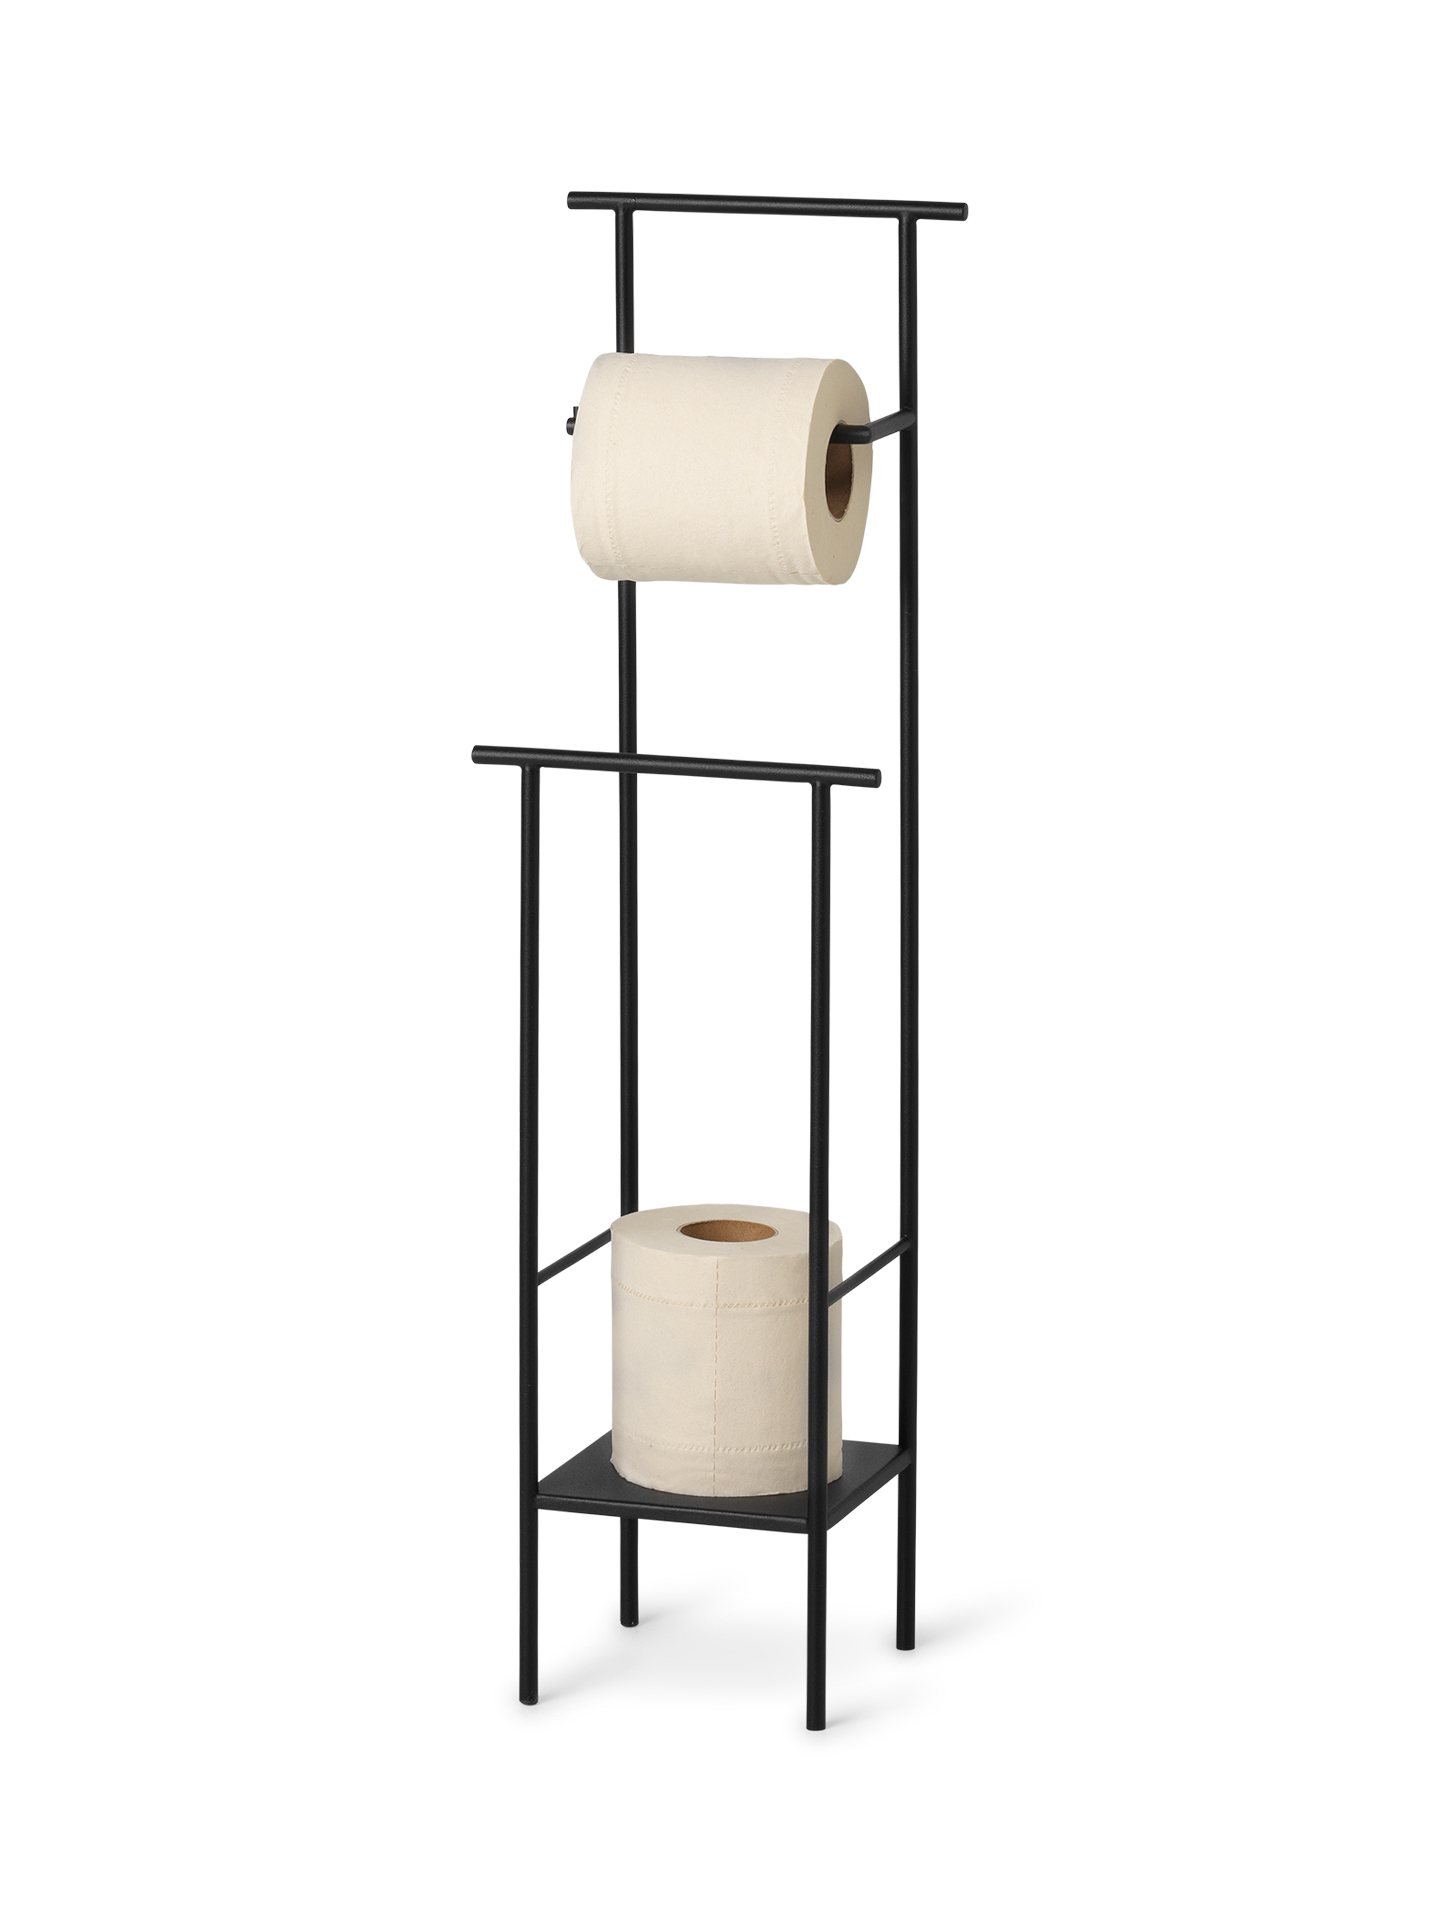 Toilet paper stand, £49, Rose & Grey